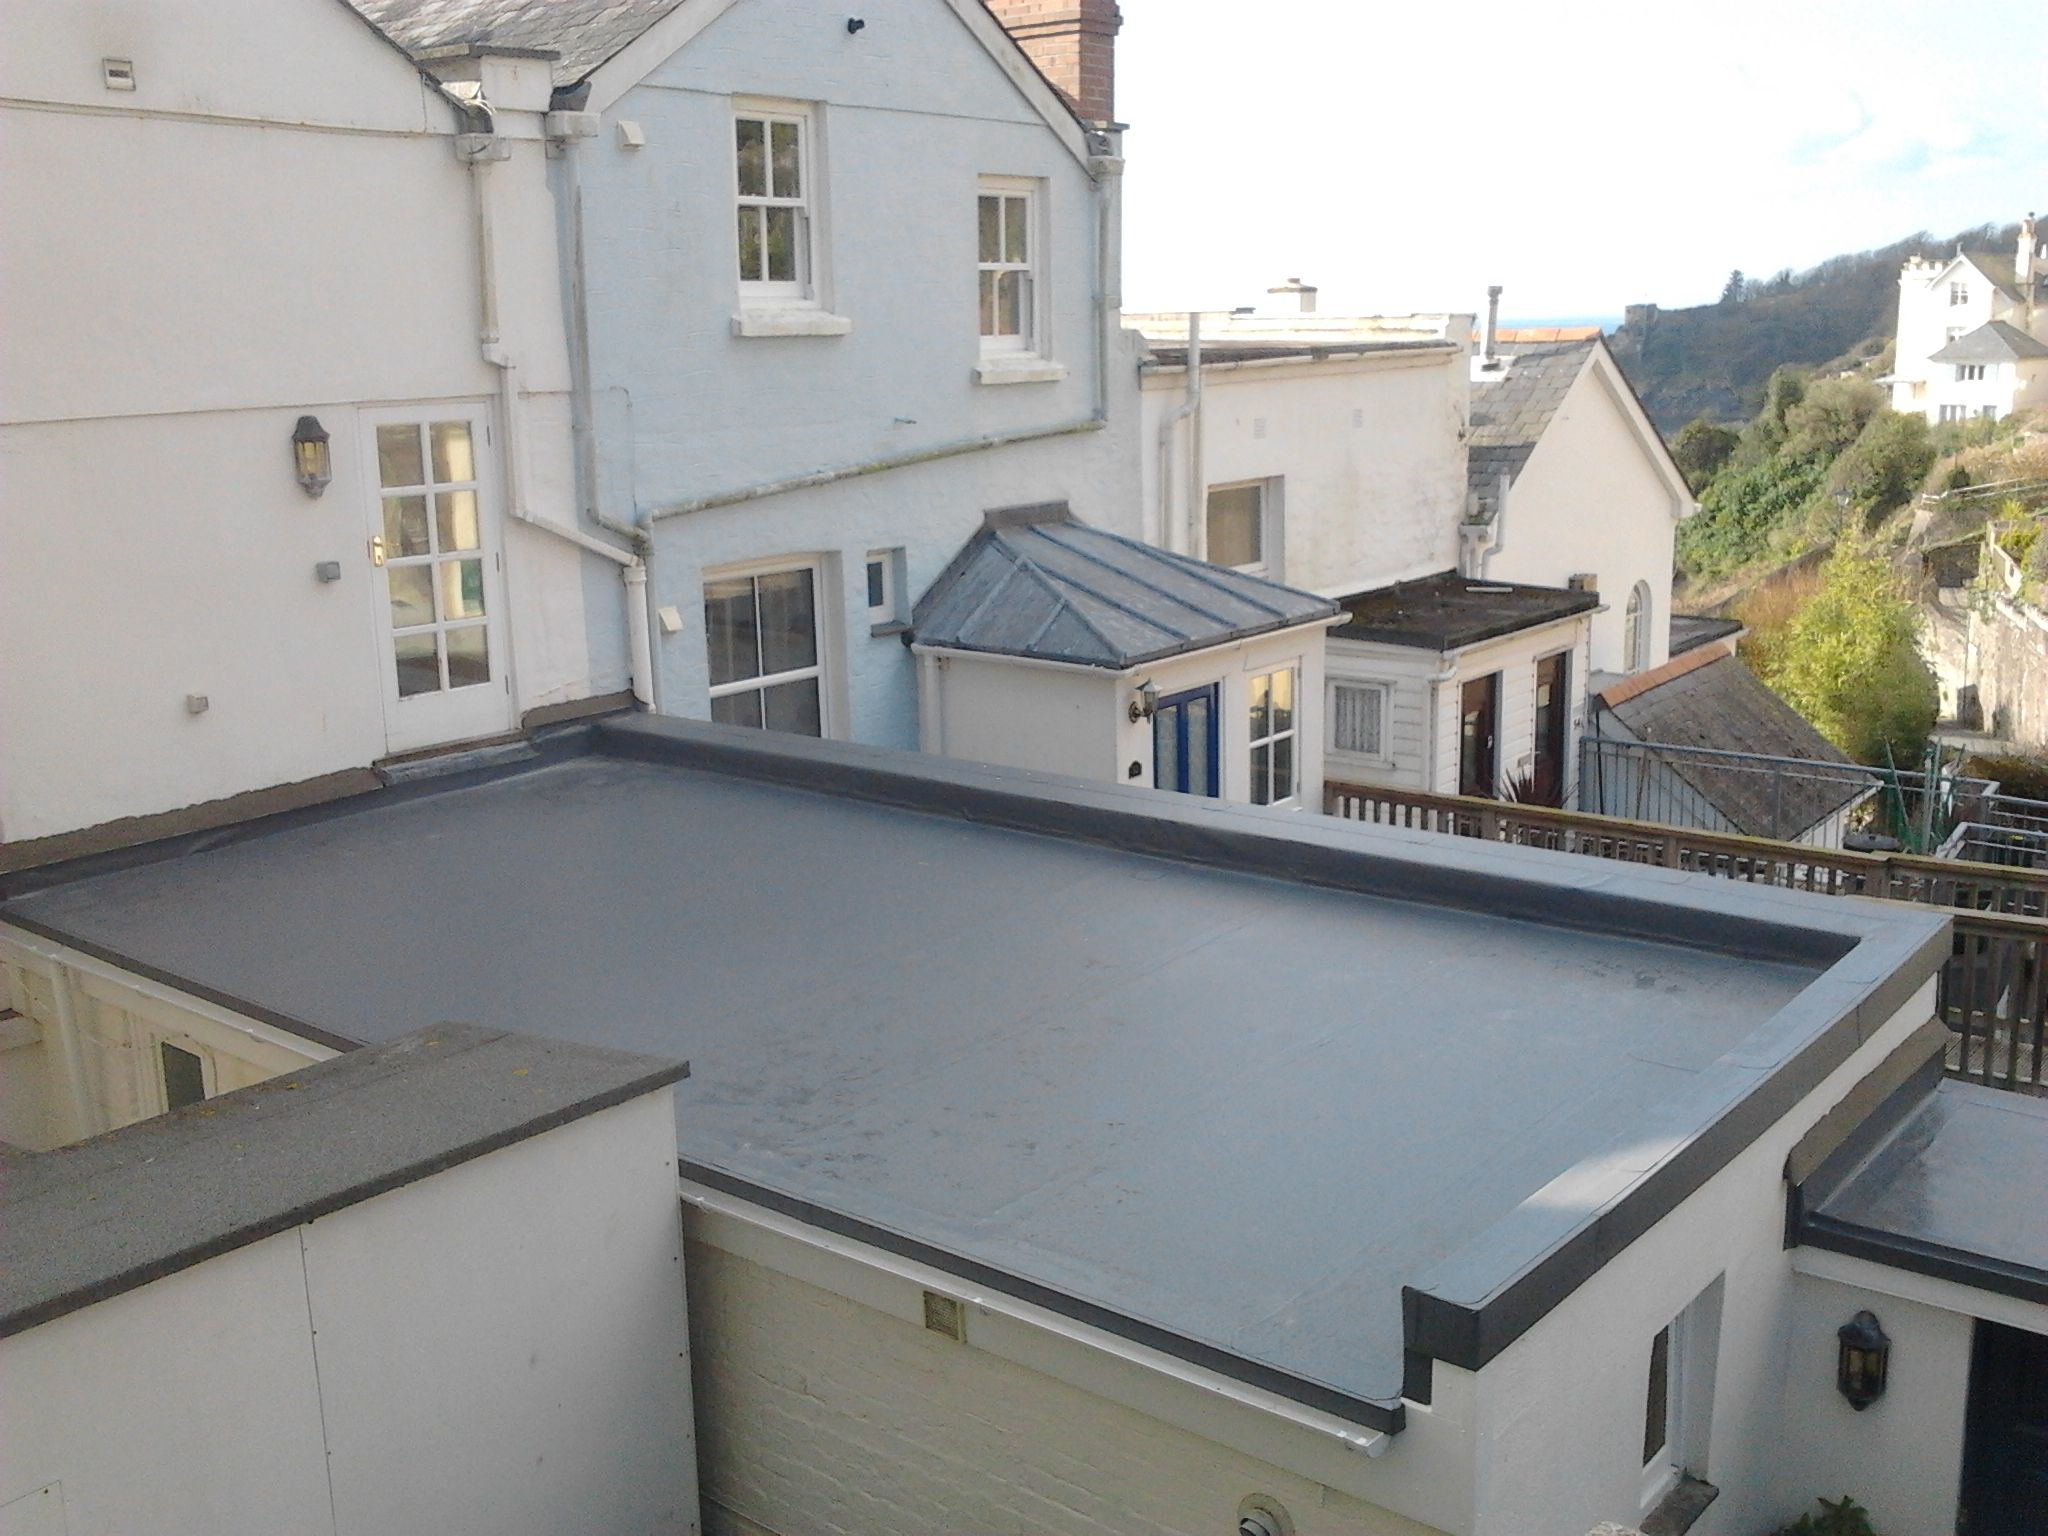 Single Ply Roofing Cornwall Pellow Flat Roofing Ltd Flat Roof Single Ply Roofing Canopy Outdoor